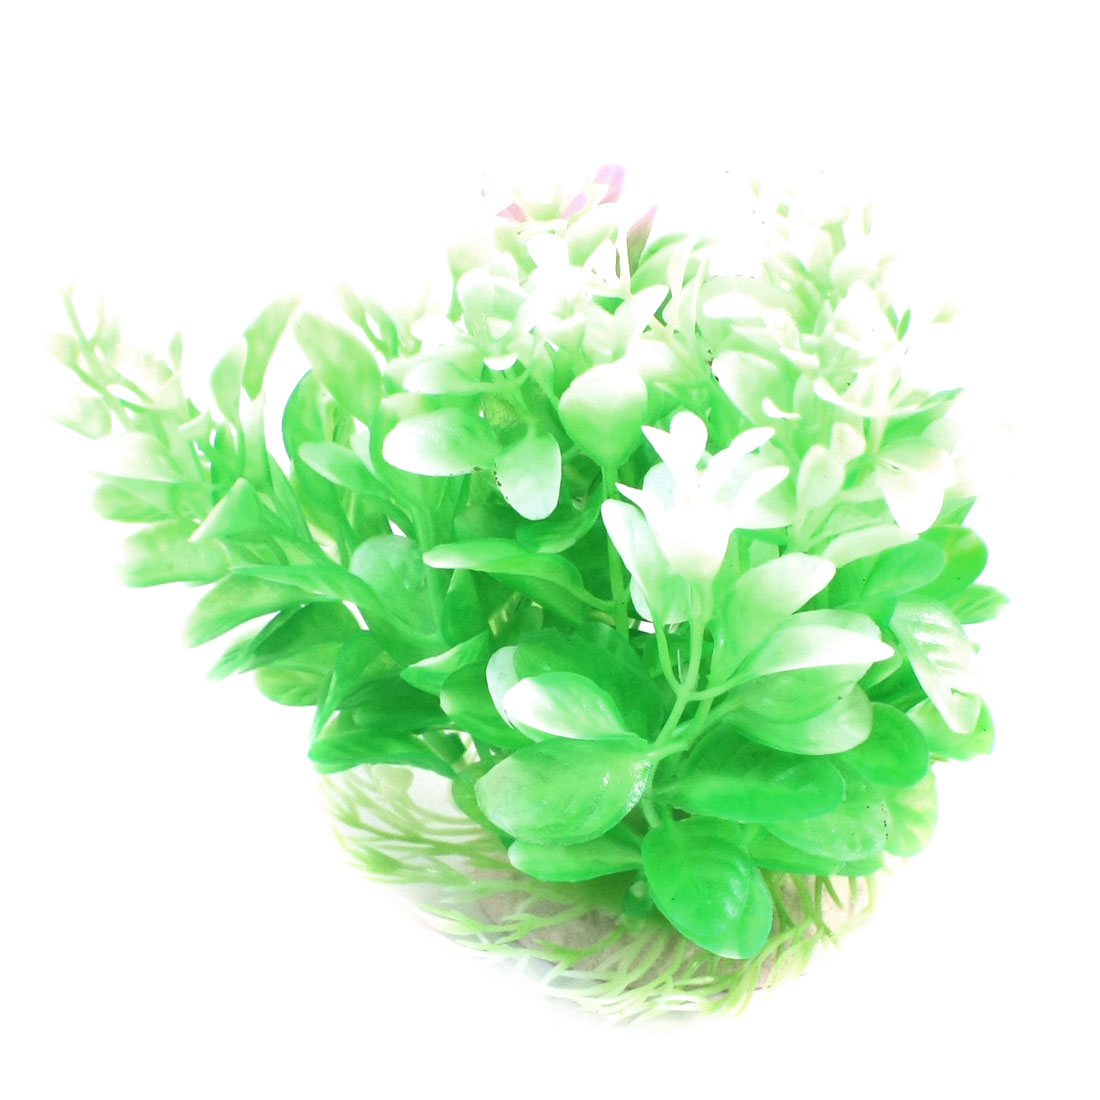 Aquarium Underwater Landscaping Green White Plastic Water Grass Plant 12cm High w Ceramic Base